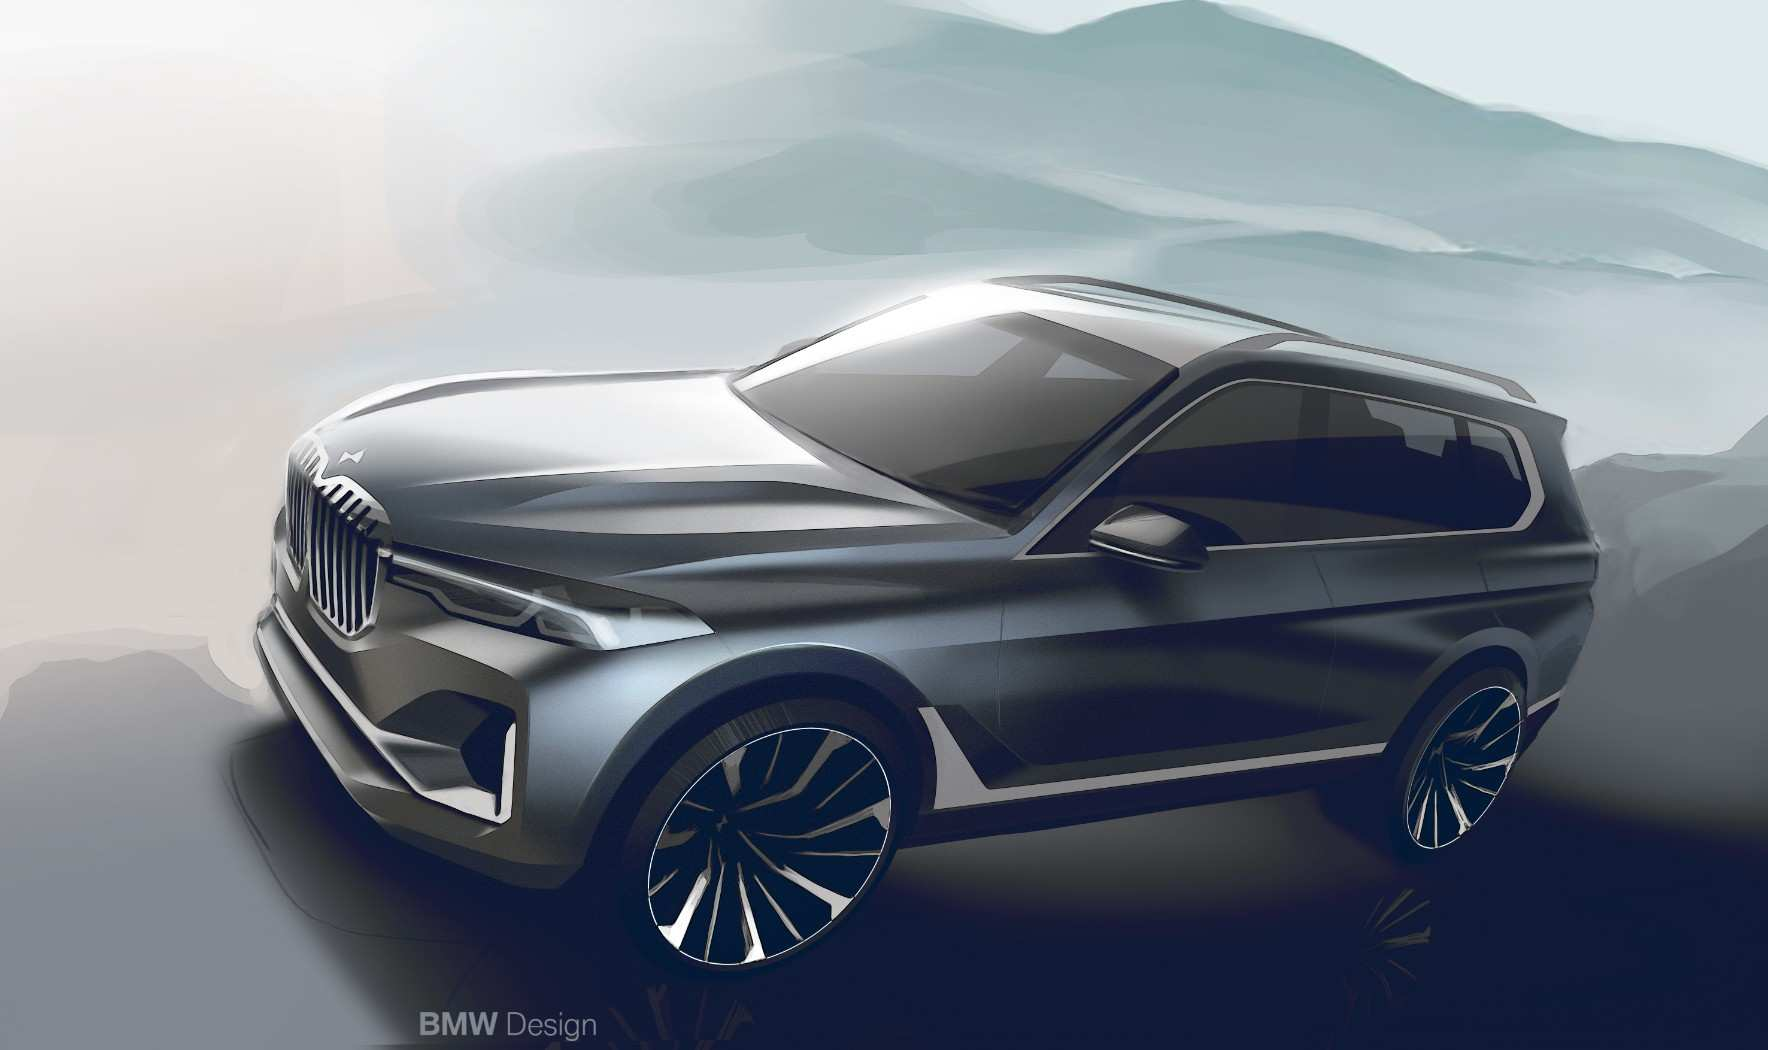 52 The Best 2020 BMW X7 Suv Series History